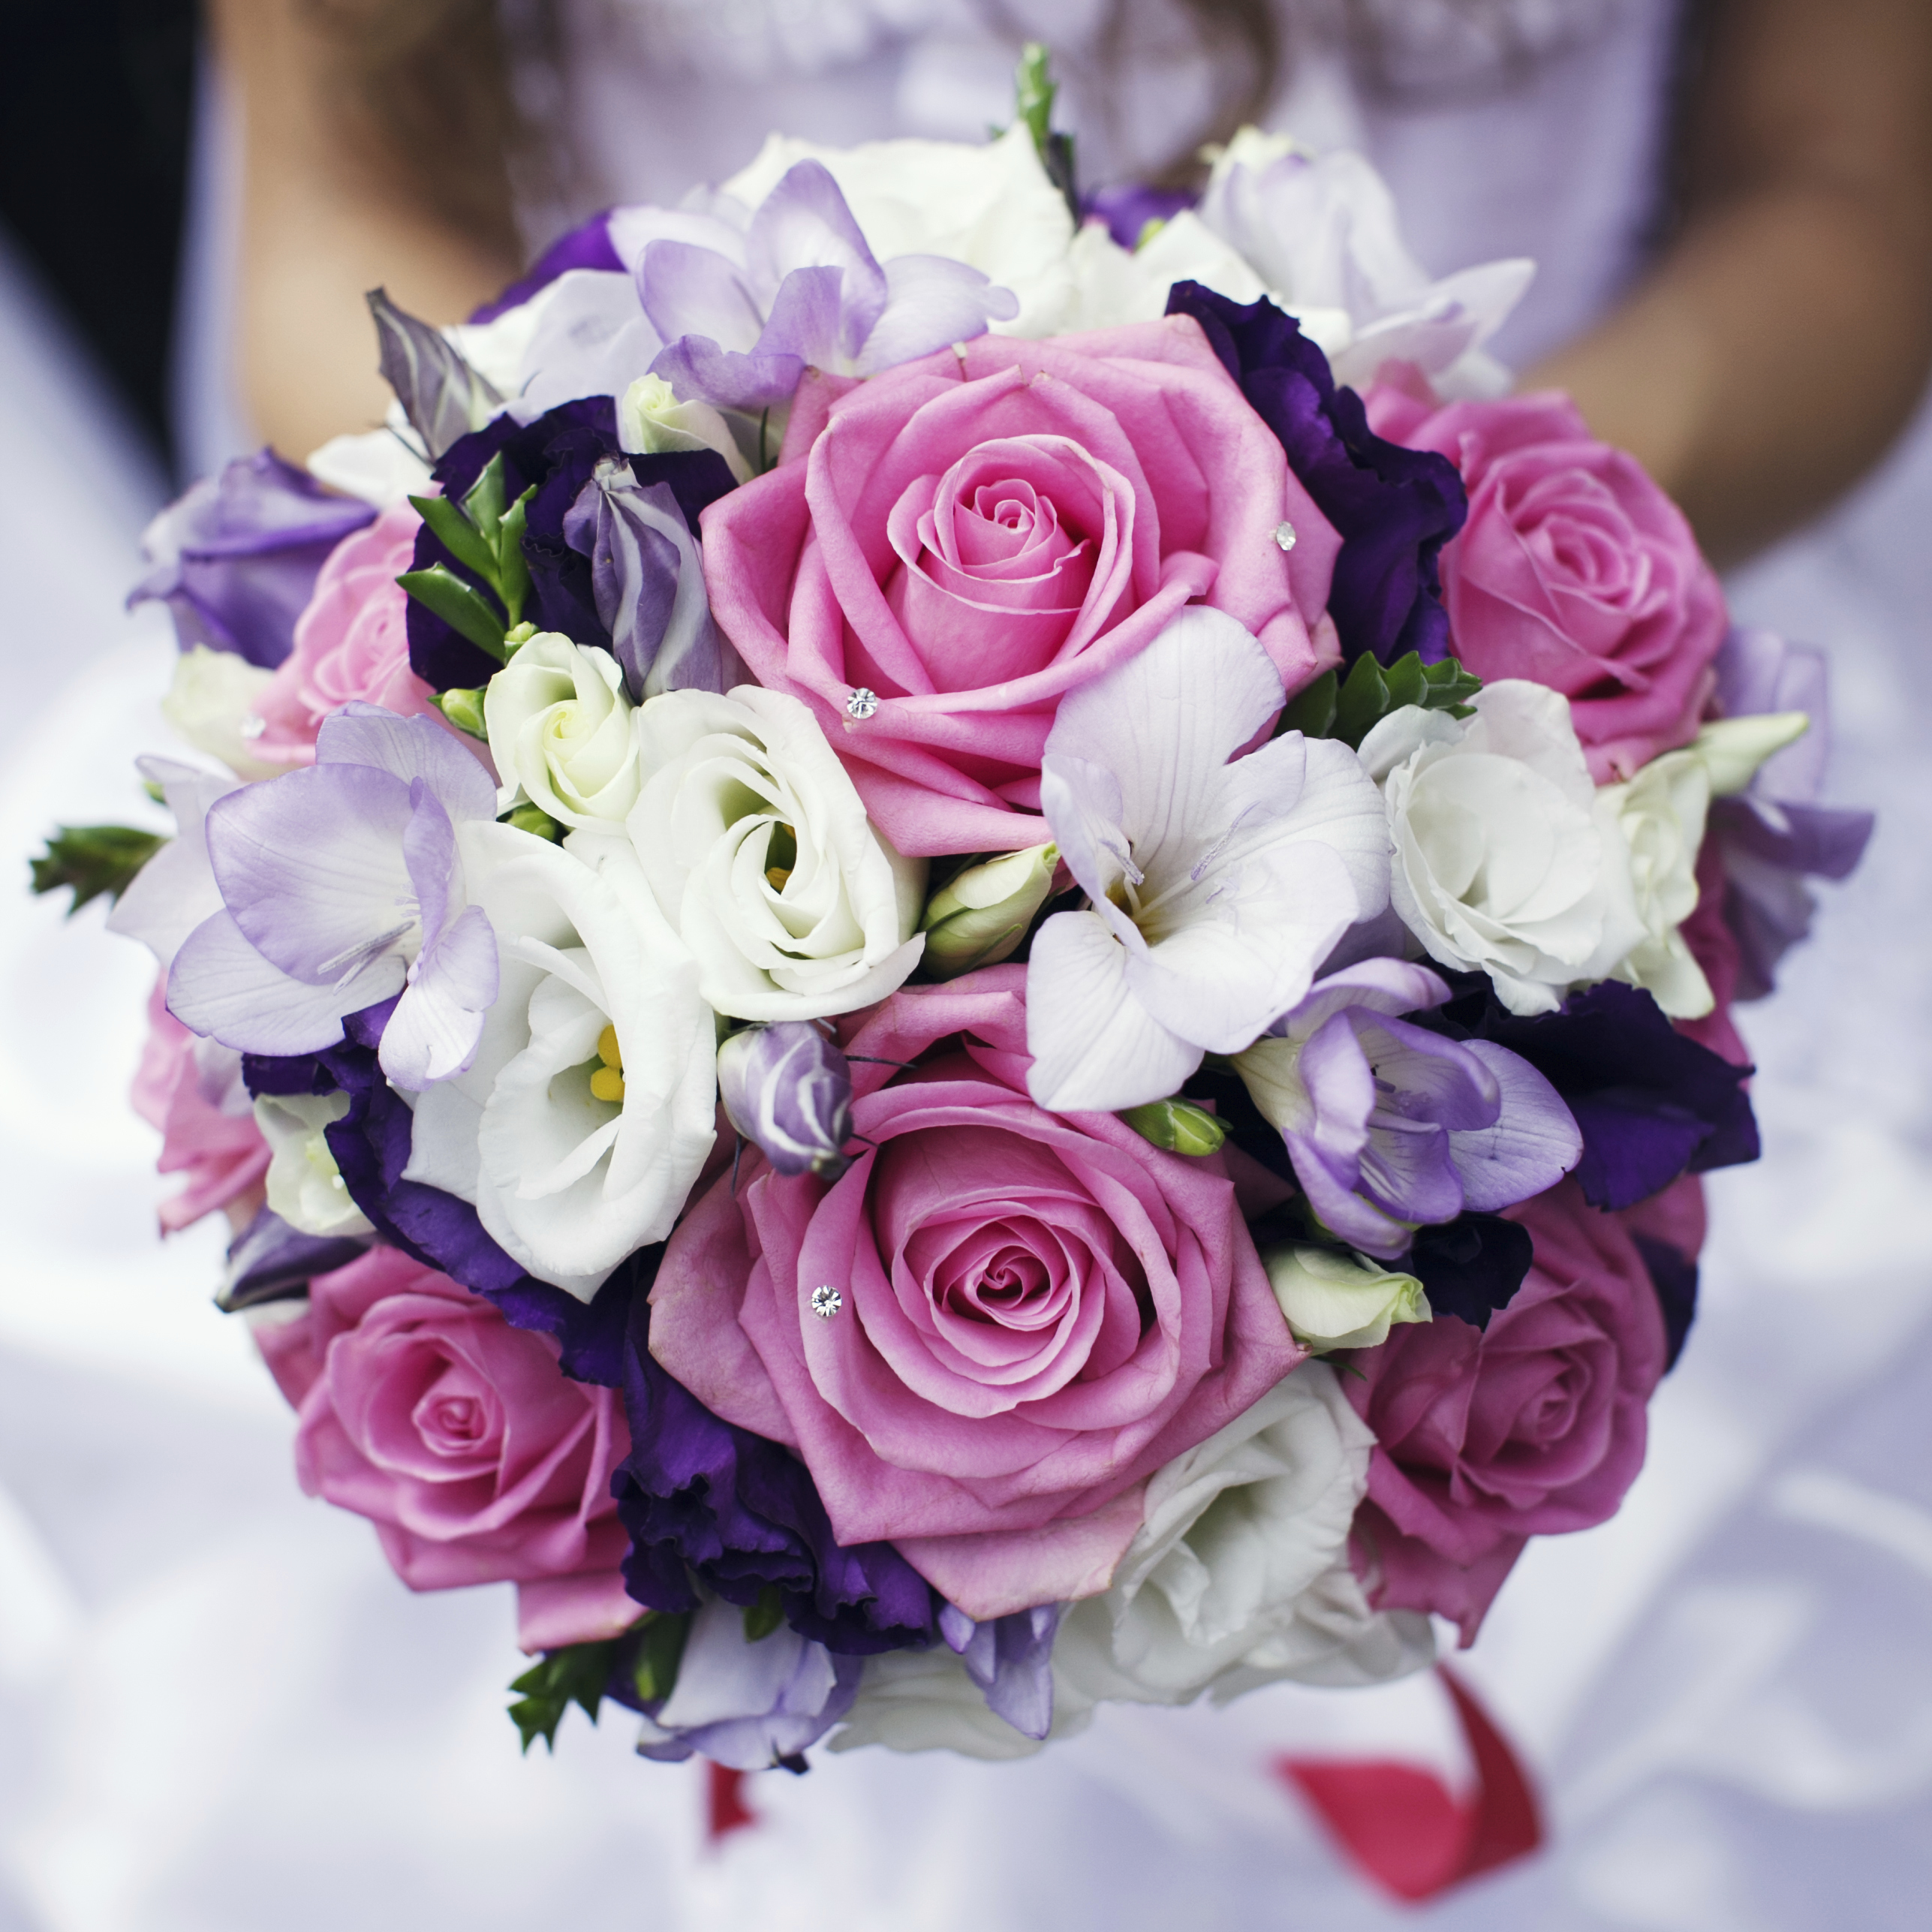 Wedding Flowers: Easy Weddings